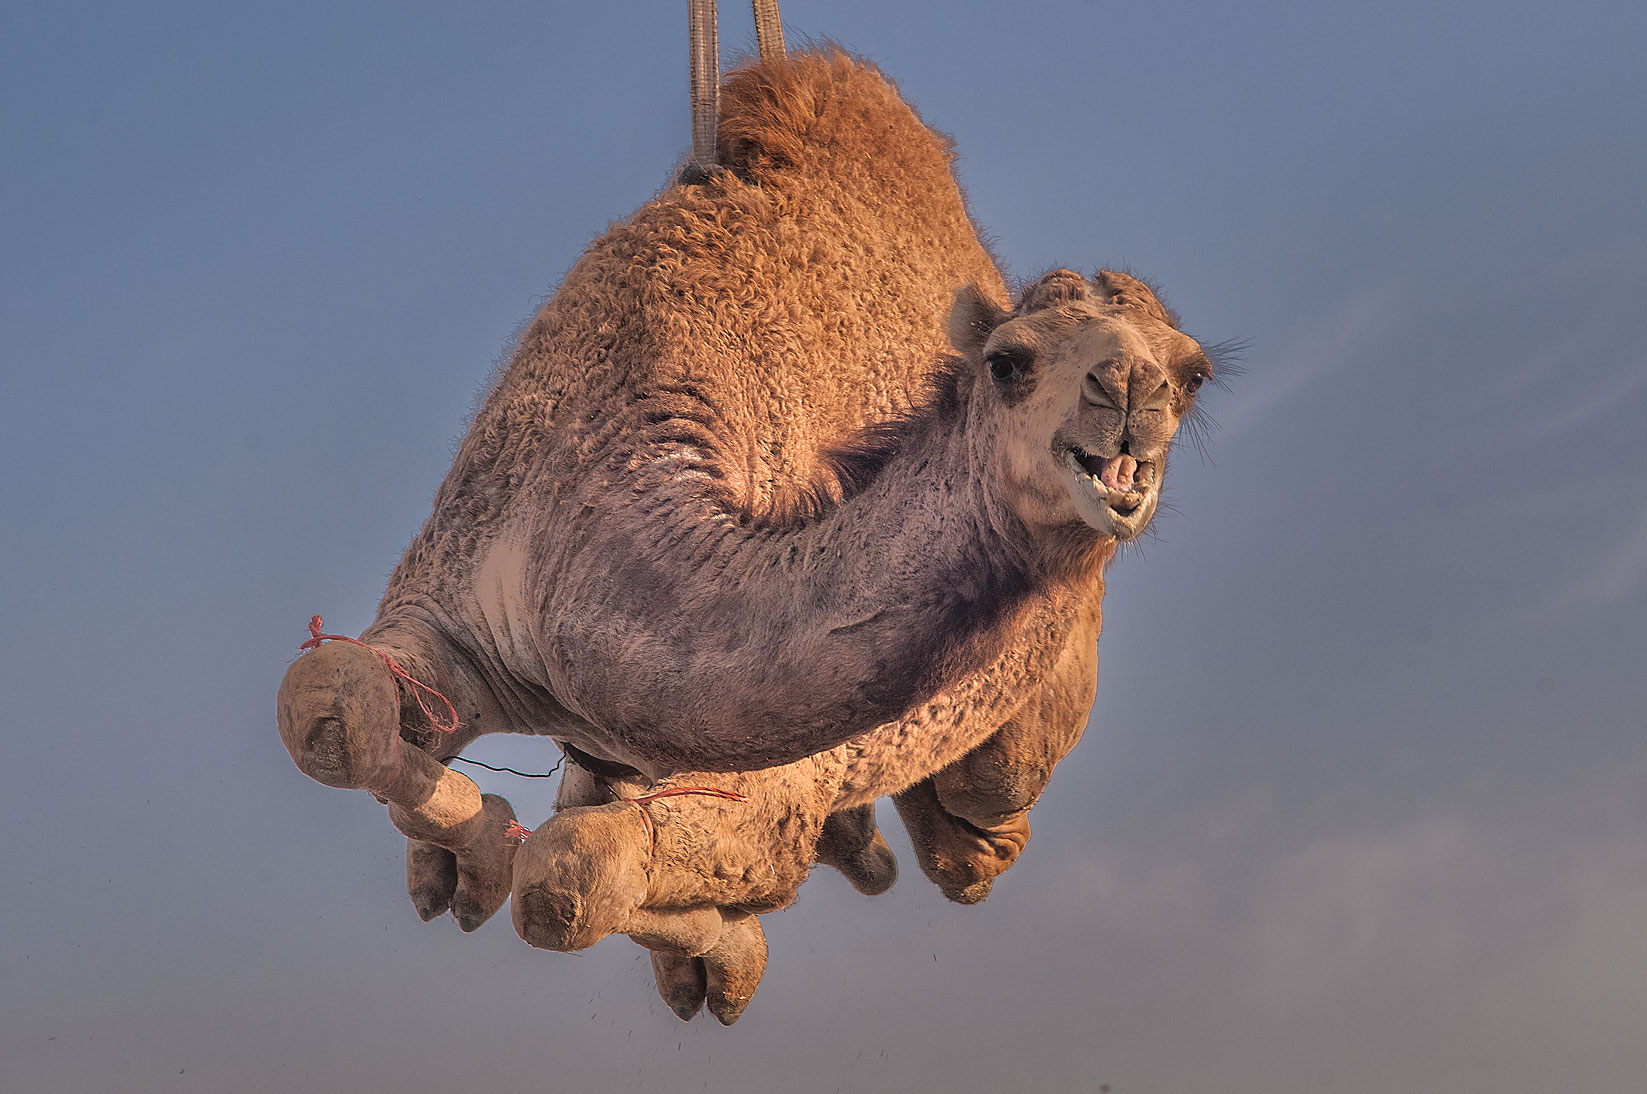 Camel smiling from sky after it was lifted by a...Market, Abu Hamour area. Doha, Qatar